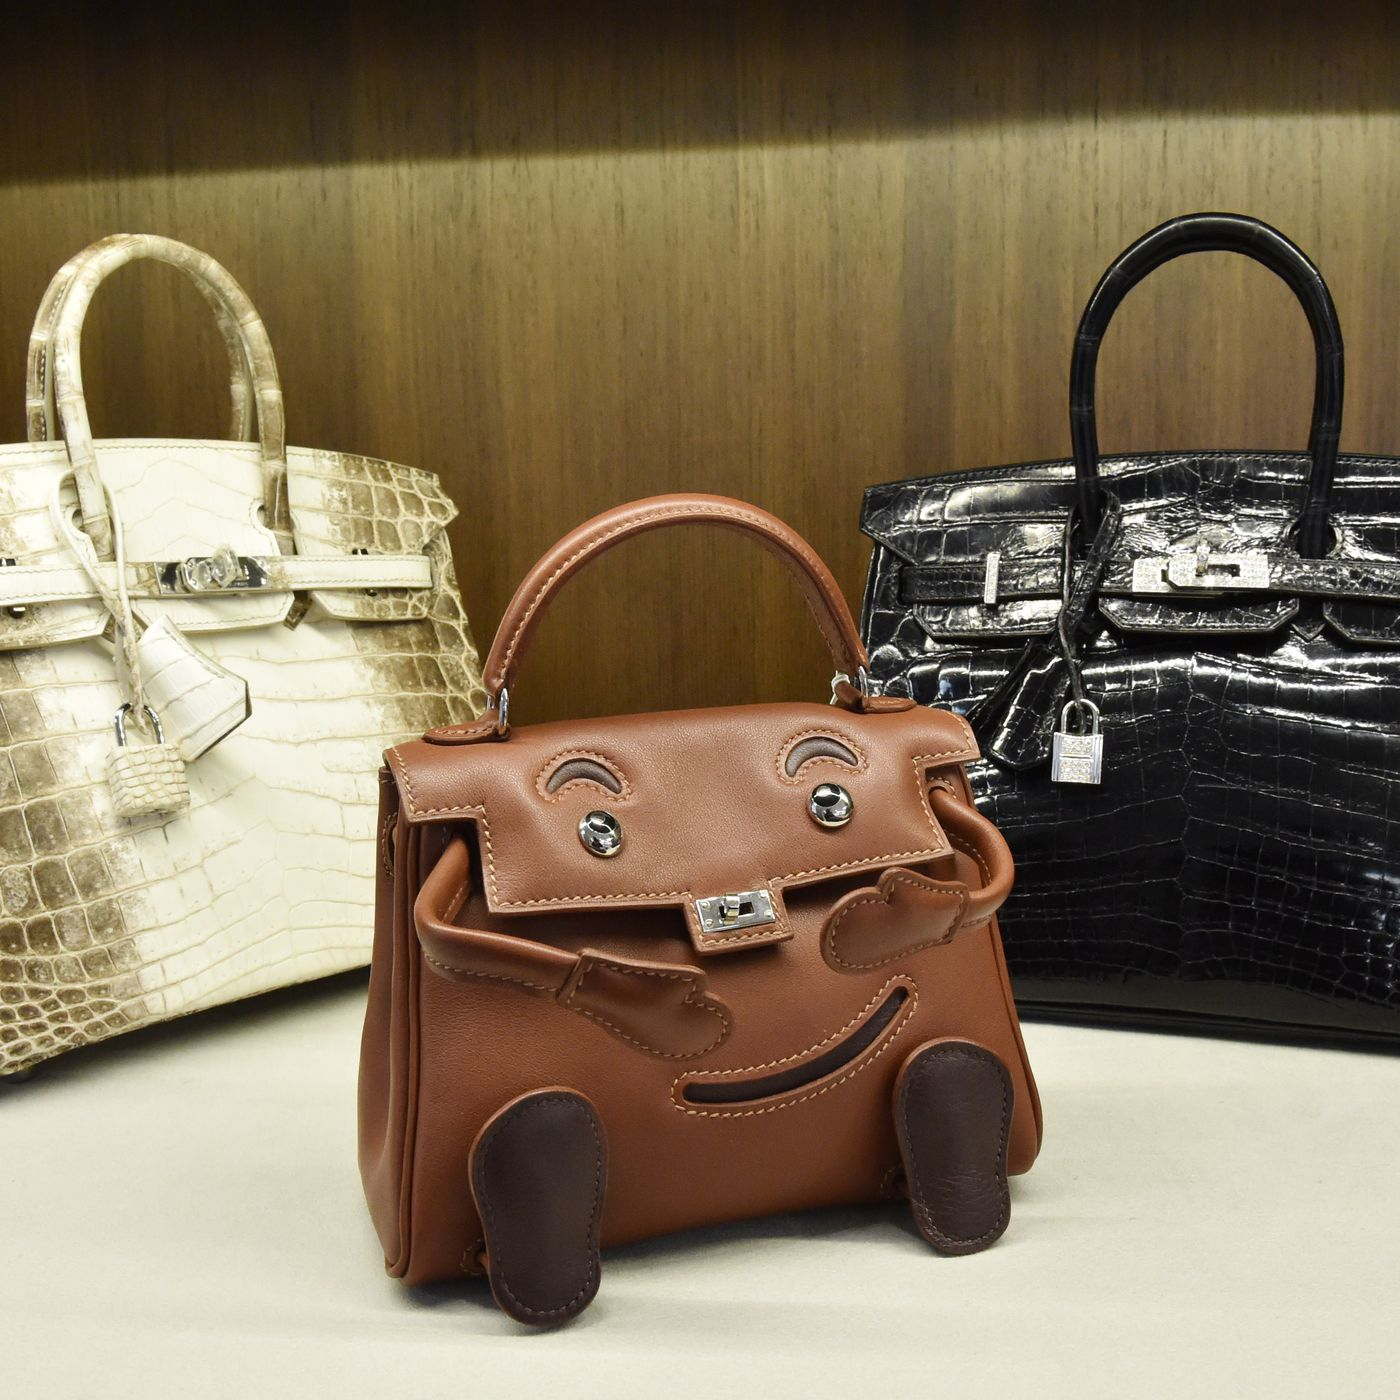 c28649aed2d6 The Birkin Bag That Returns Every Year to Haunt Us - Racked